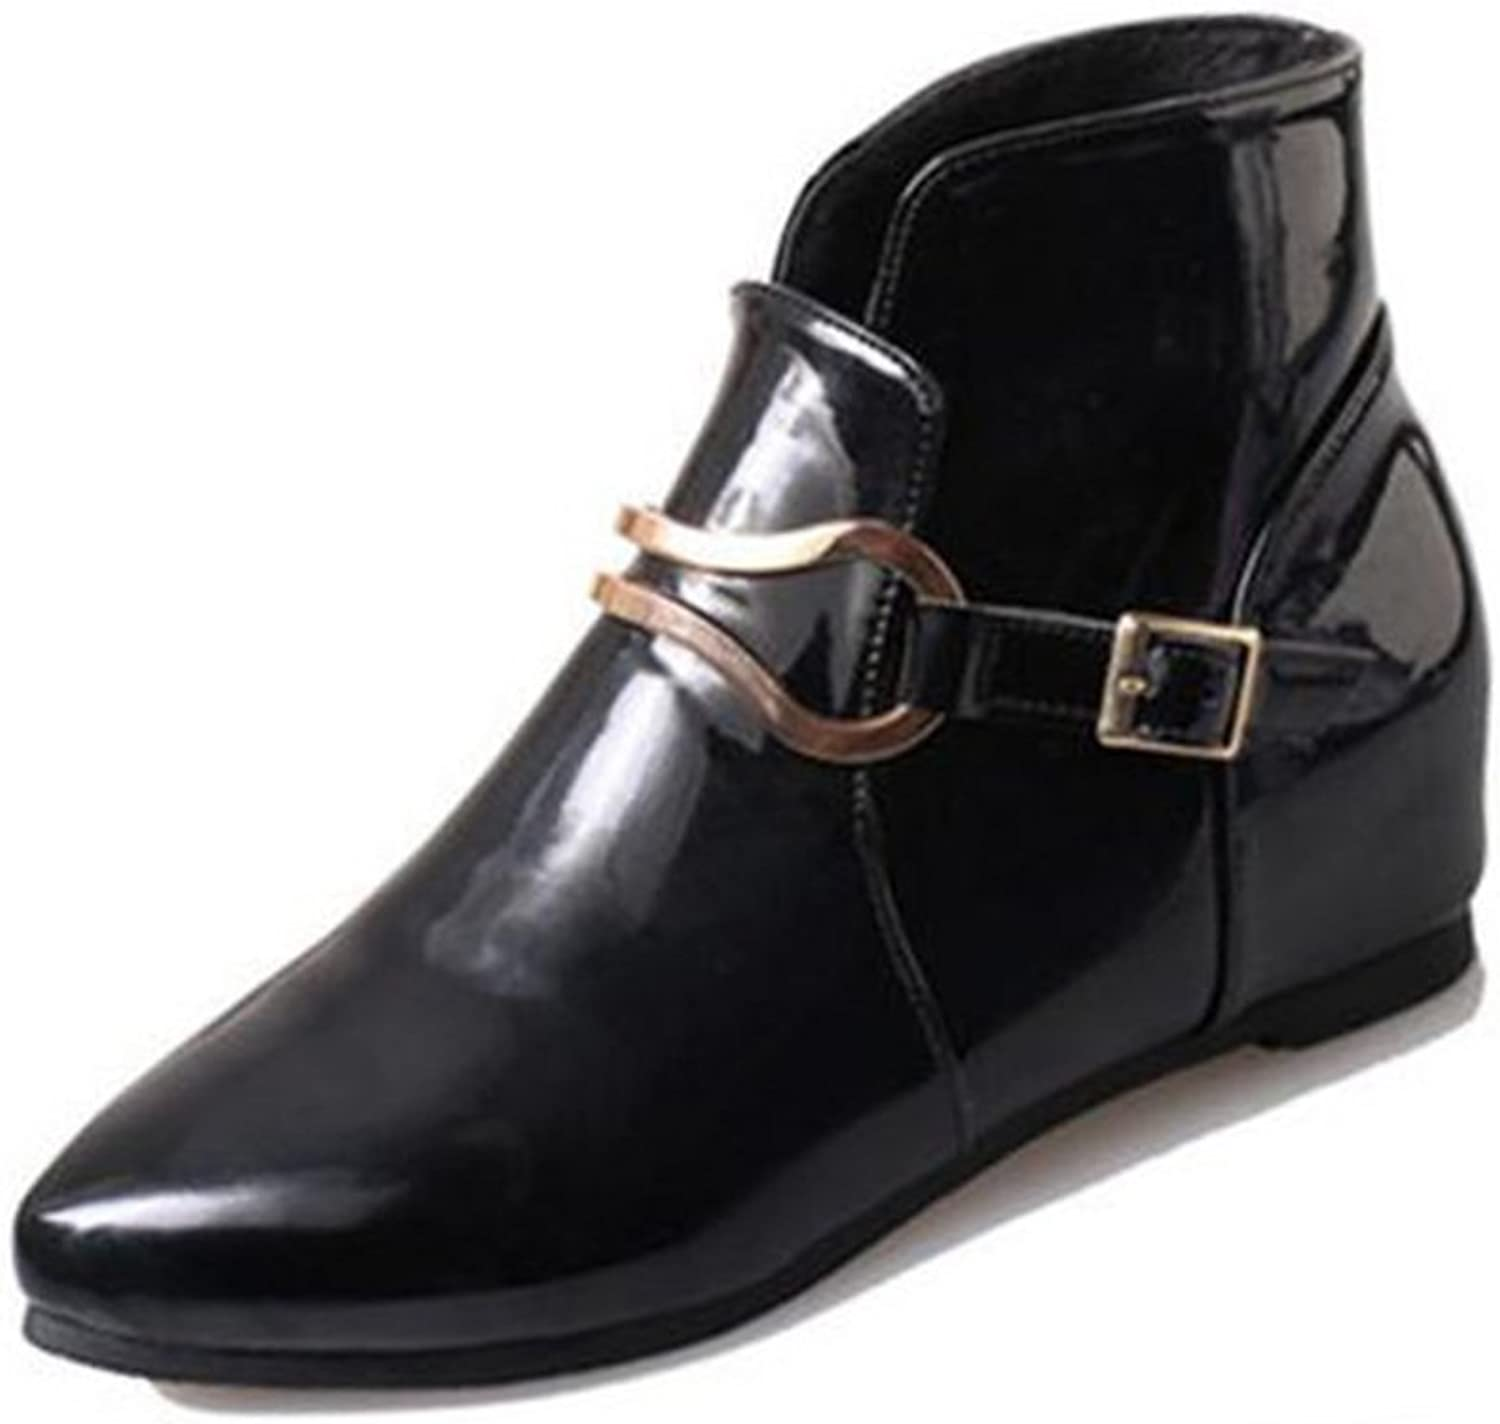 Huhuj autumn winter women's shoes Boots Vintage pointy patent leather boots Martin boots